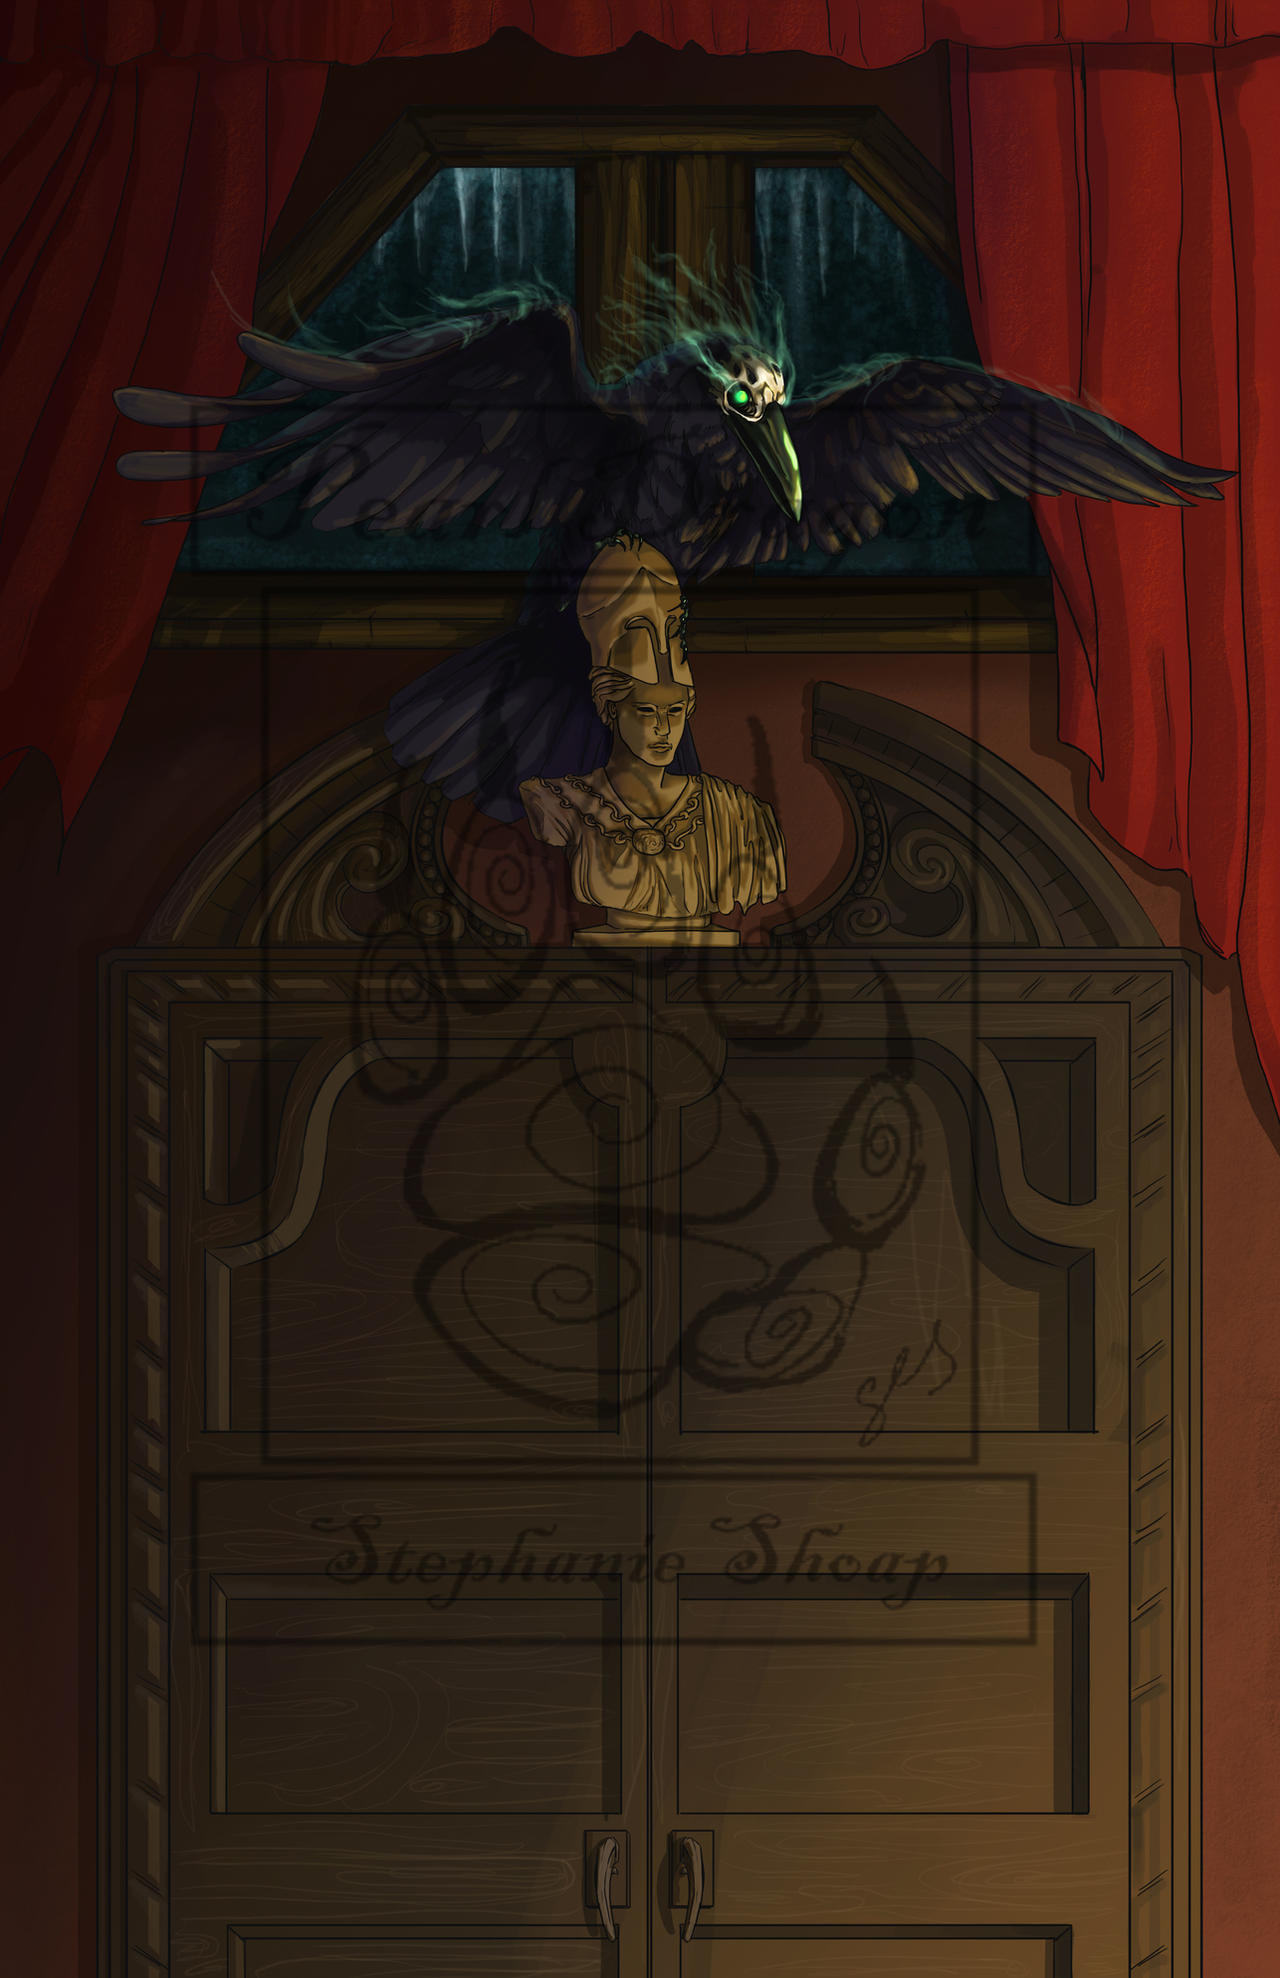 Souvent Edgar Allan Poe's The Raven by pearldragon145 on DeviantArt NV26